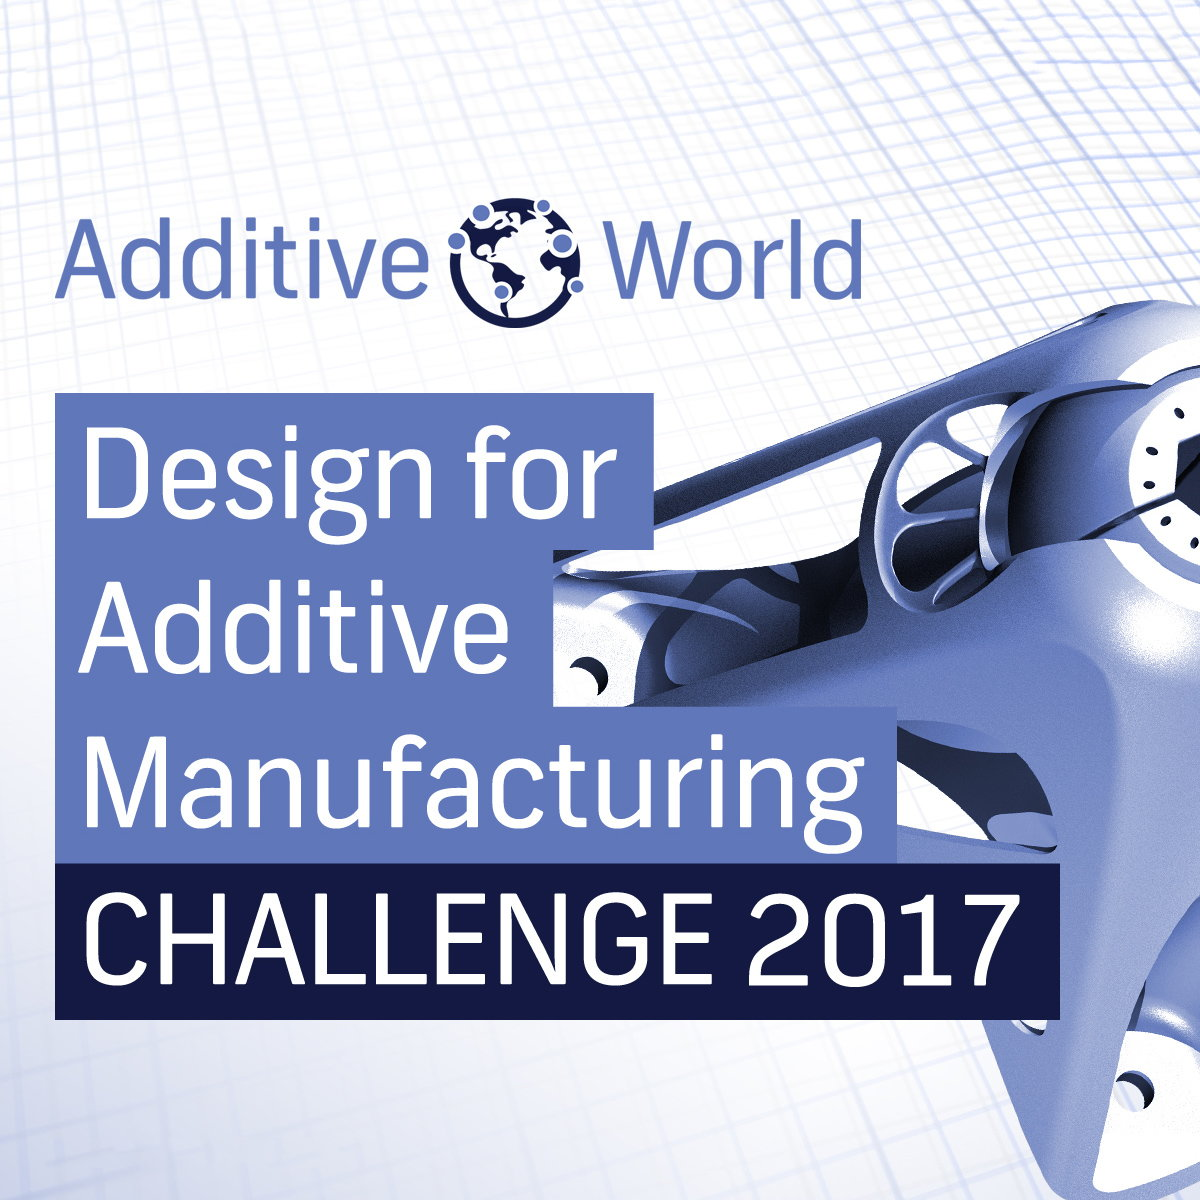 Additive World Design for Additive Manufacturing Challenge 2017